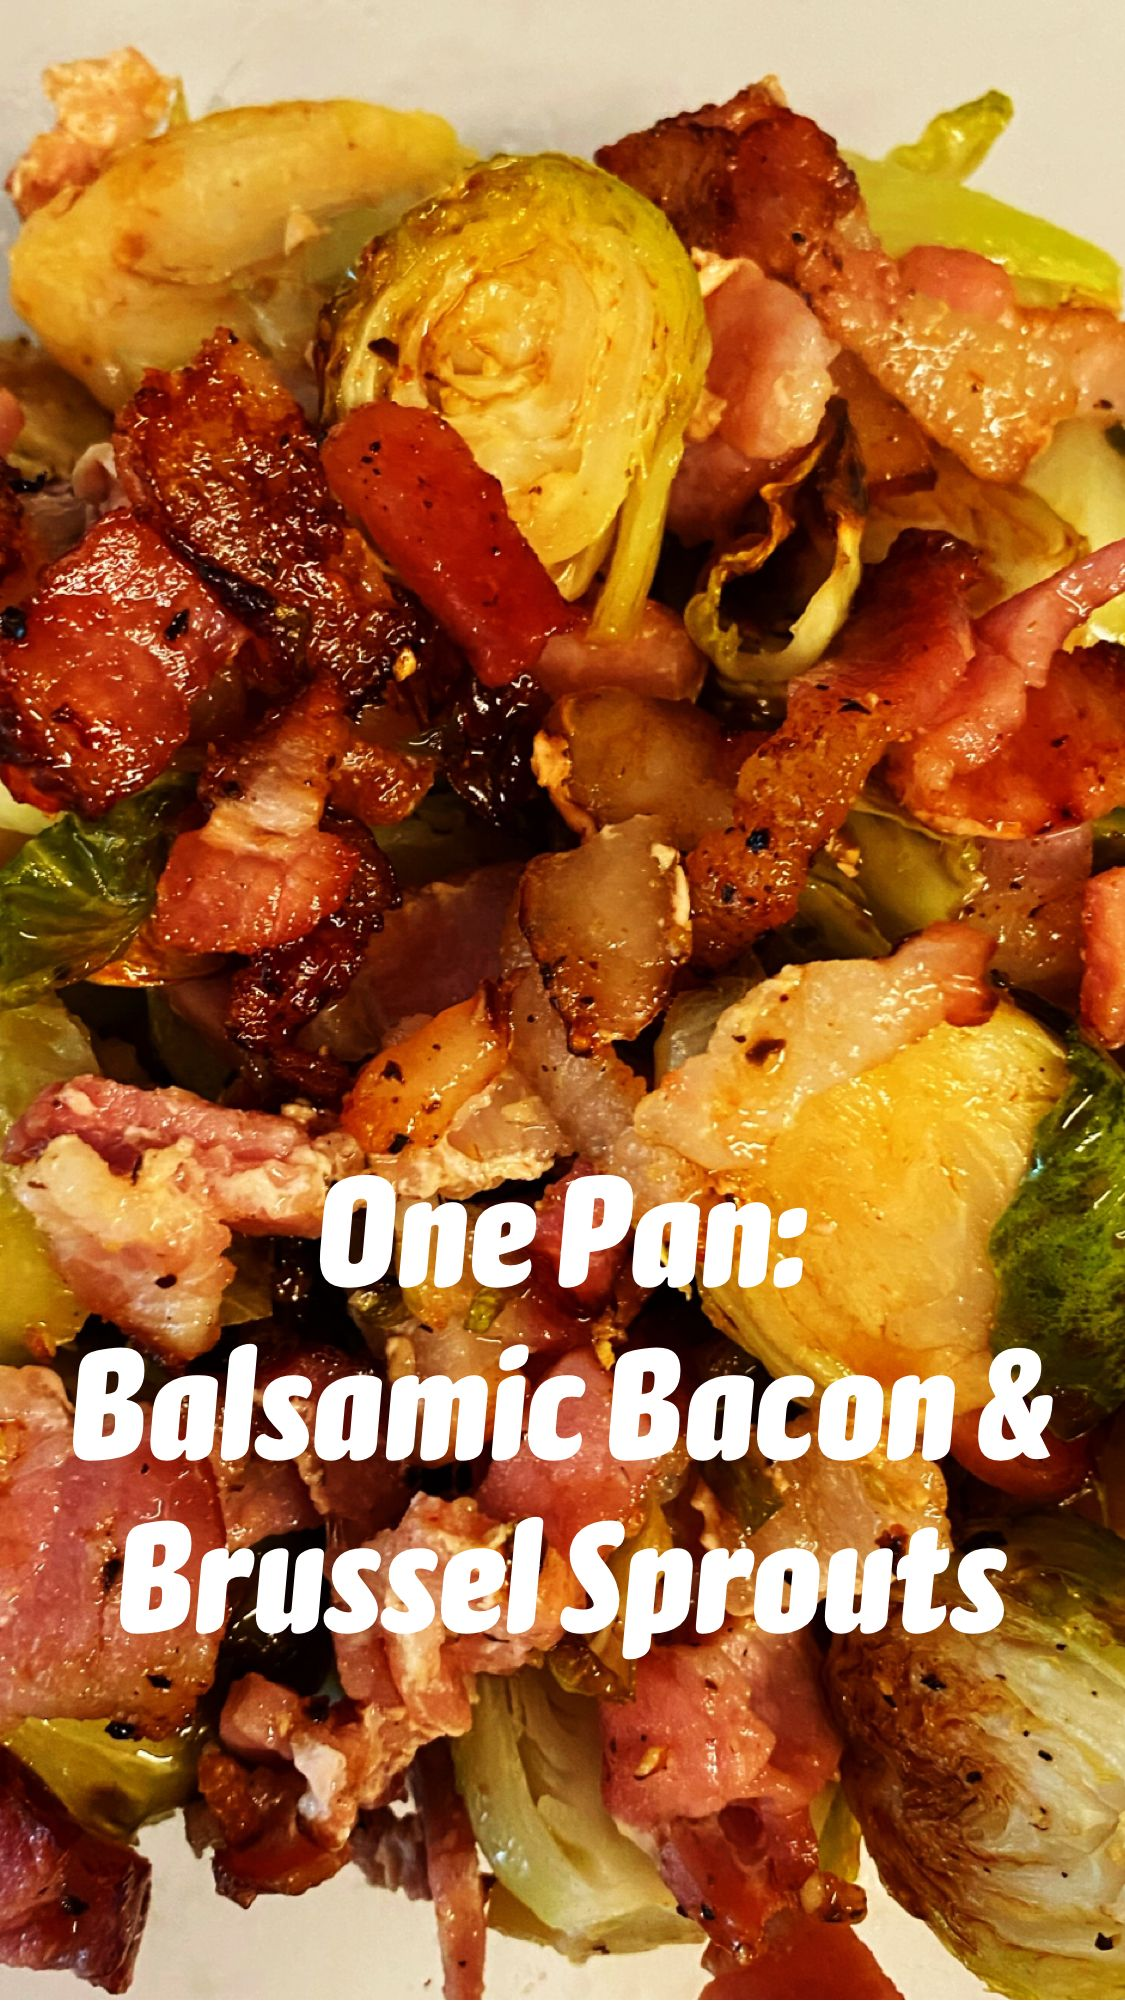 One Pan: Balsamic Bacon & Brussel Sprouts